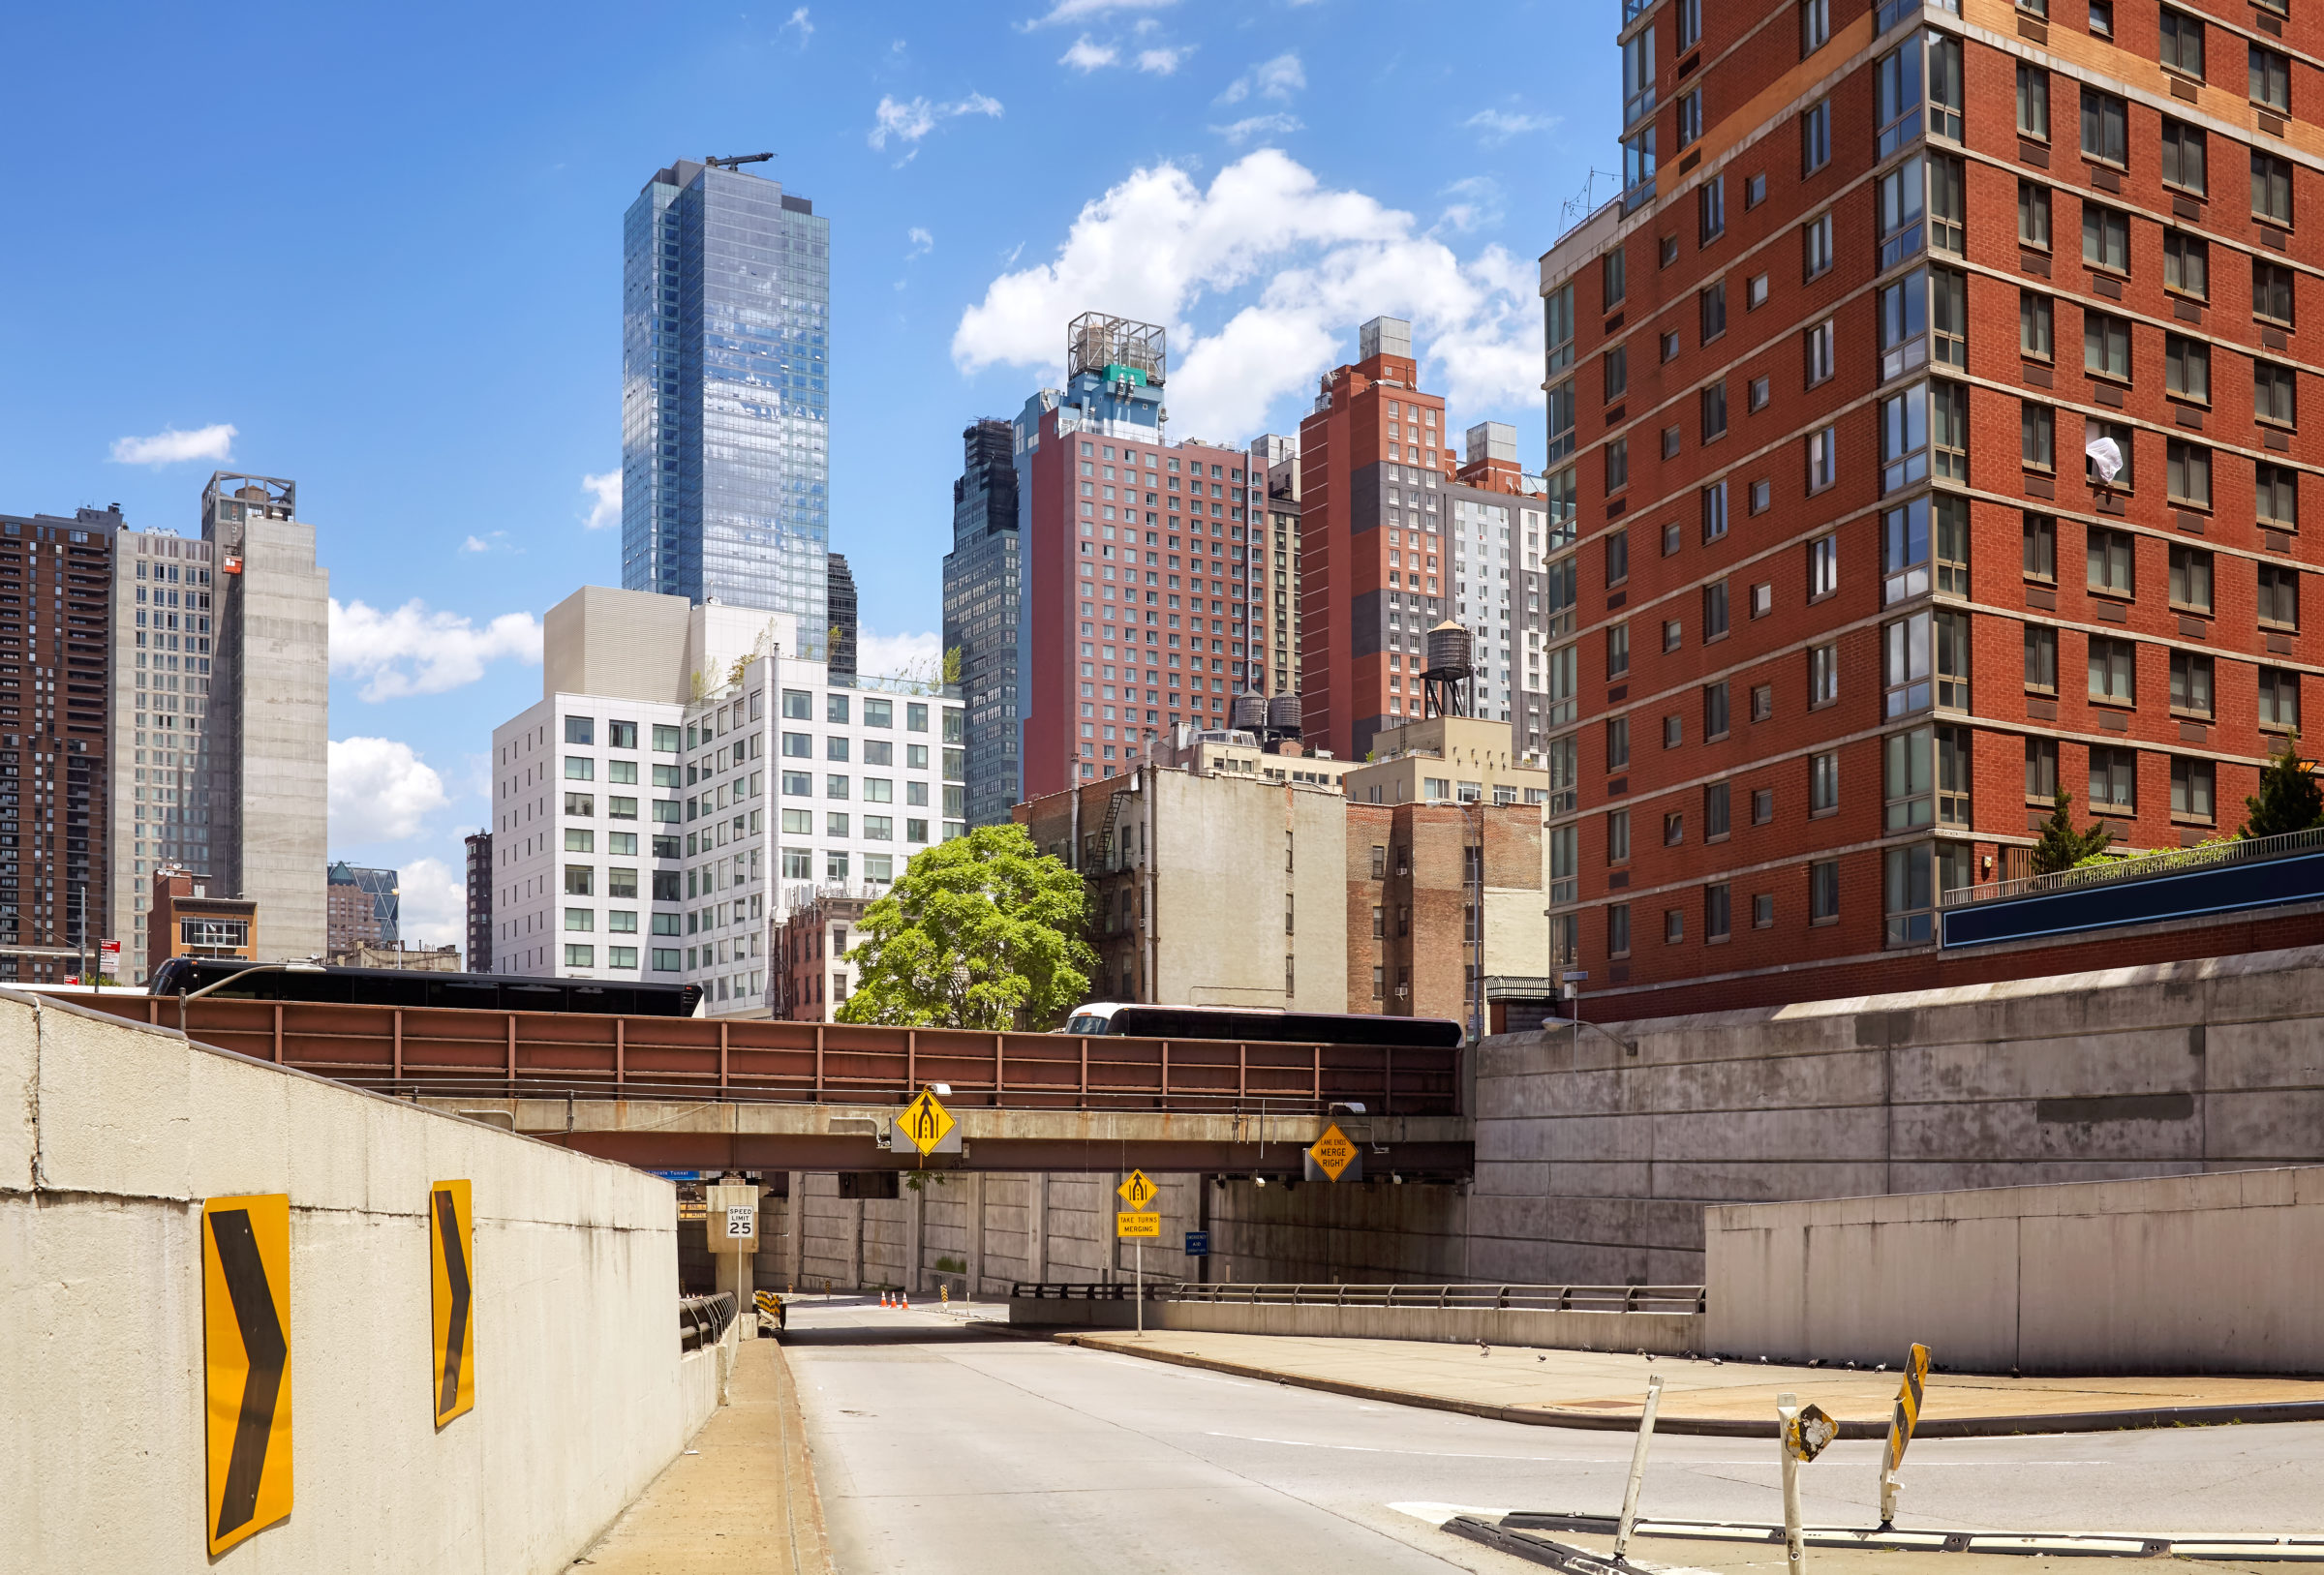 new york road infrastructure and architecture usa PDLHG8X